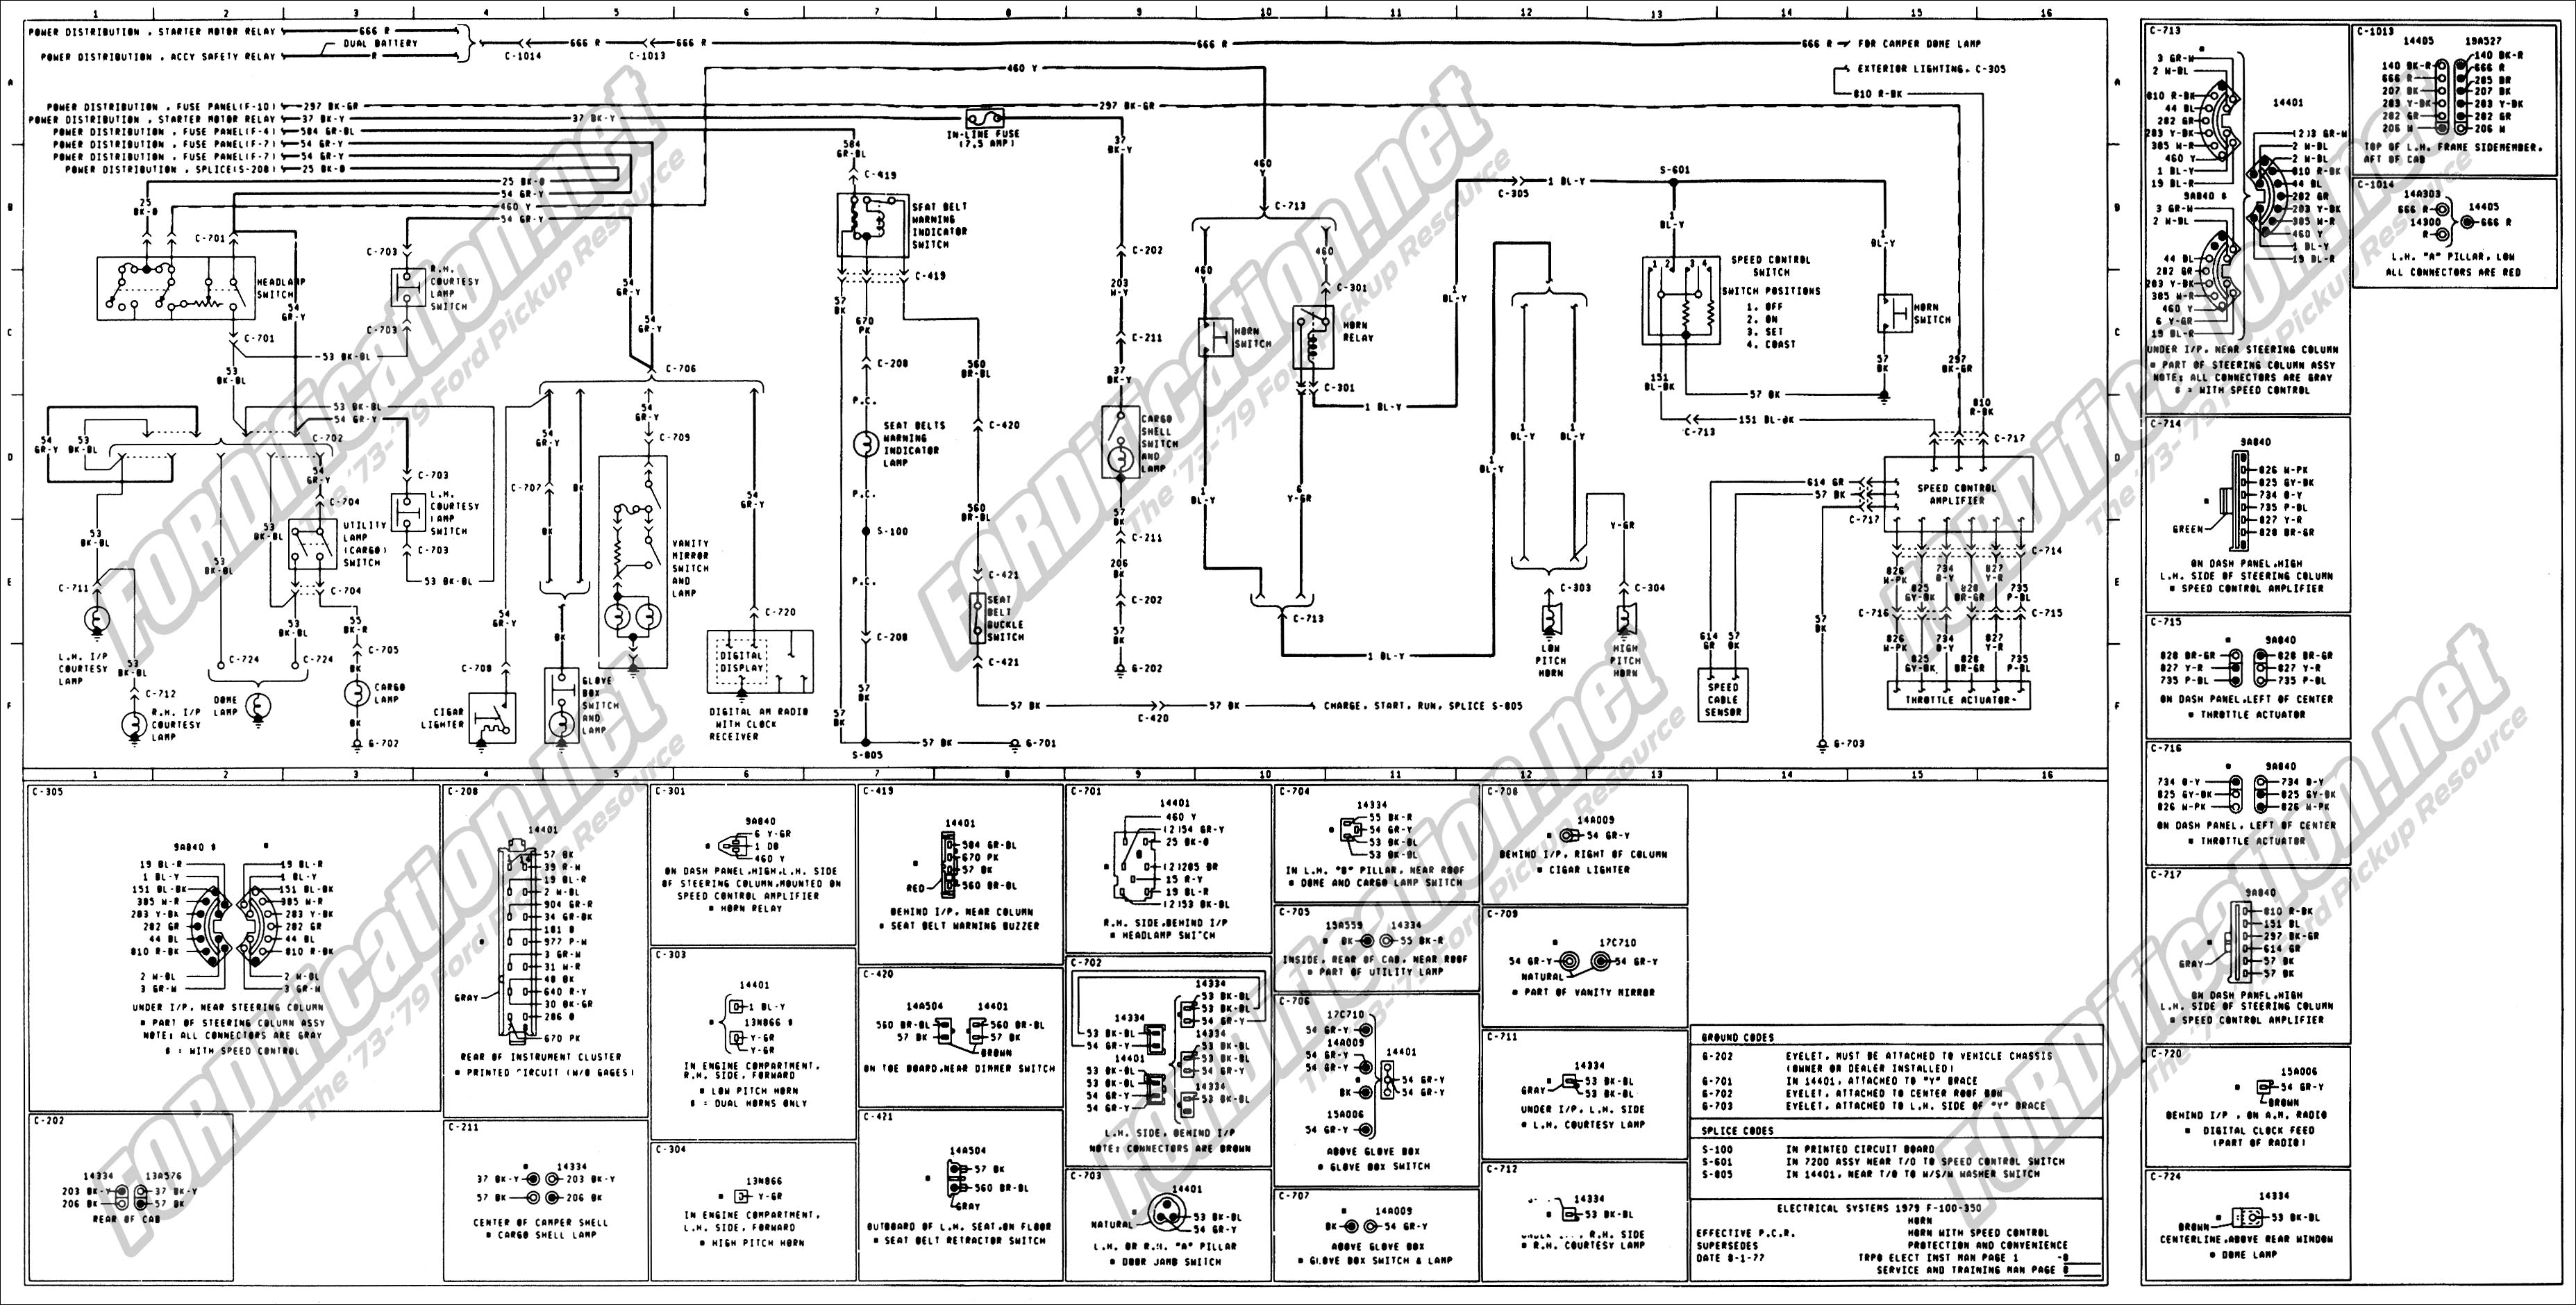 1972 ford bronco wiring diagram diy enthusiasts wiring diagrams u2022 rh okdrywall co